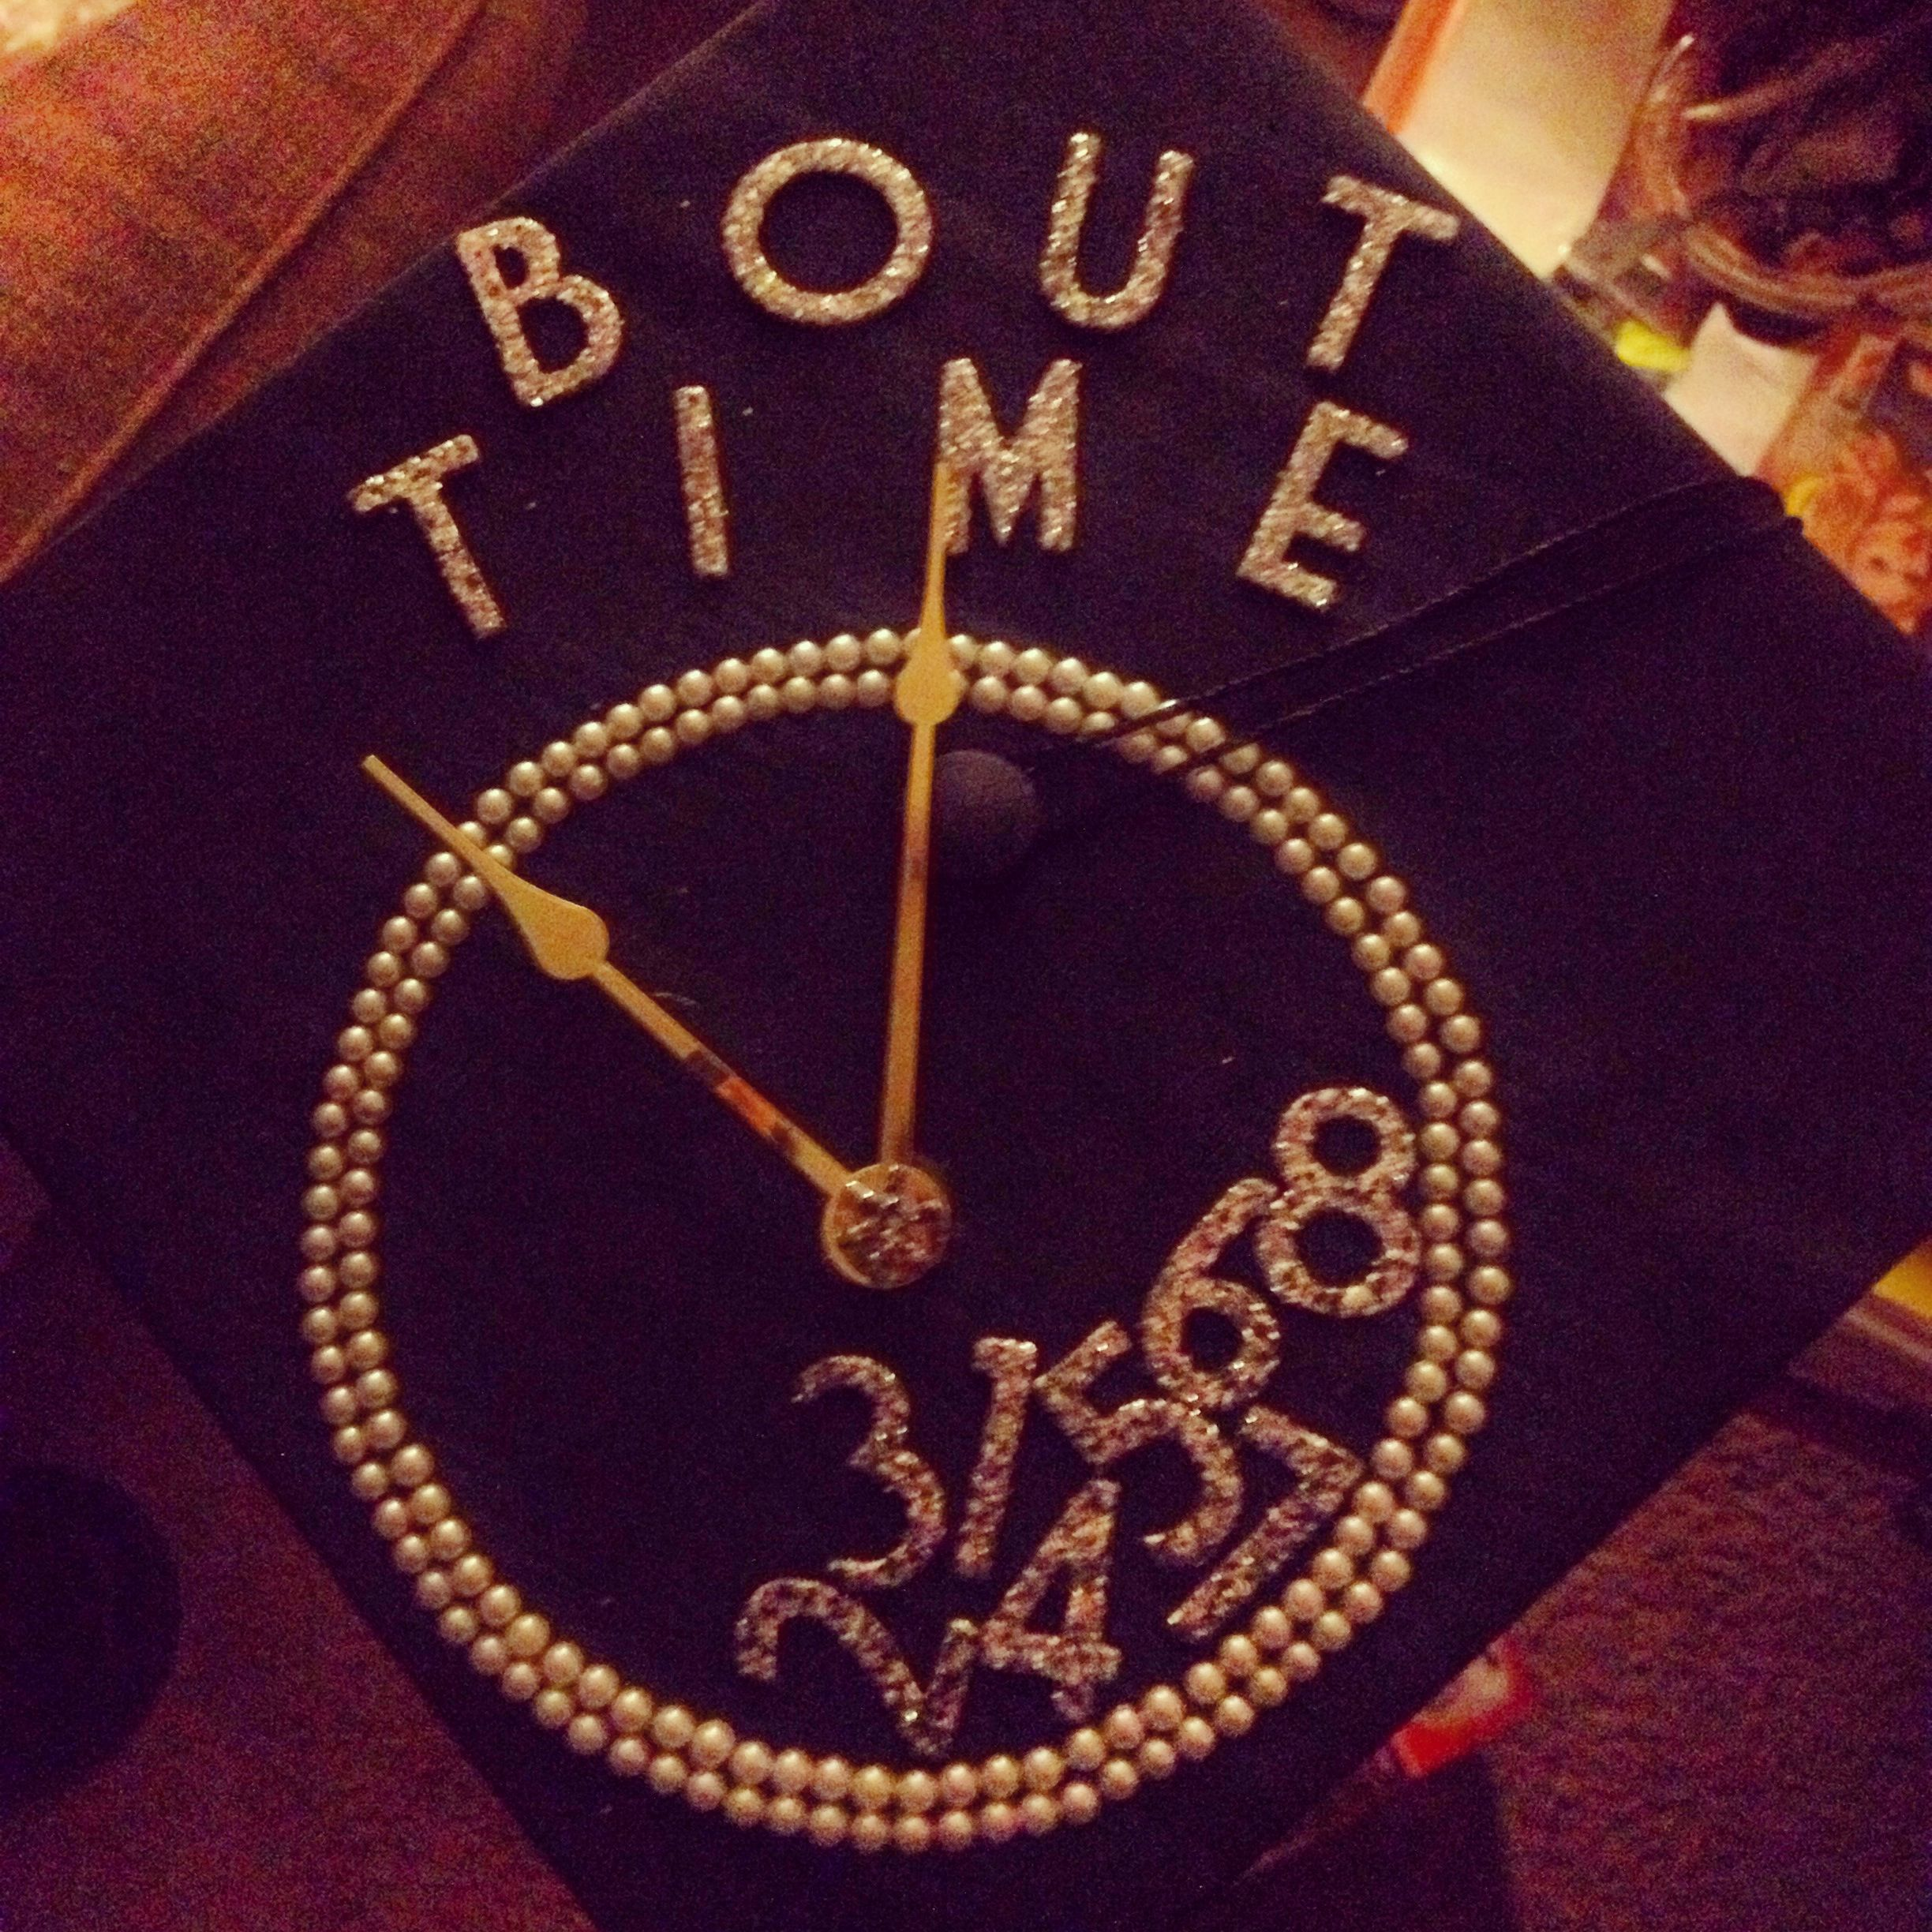 17 Best images about Cap in gown decor on Pinterest | Glue dots ...